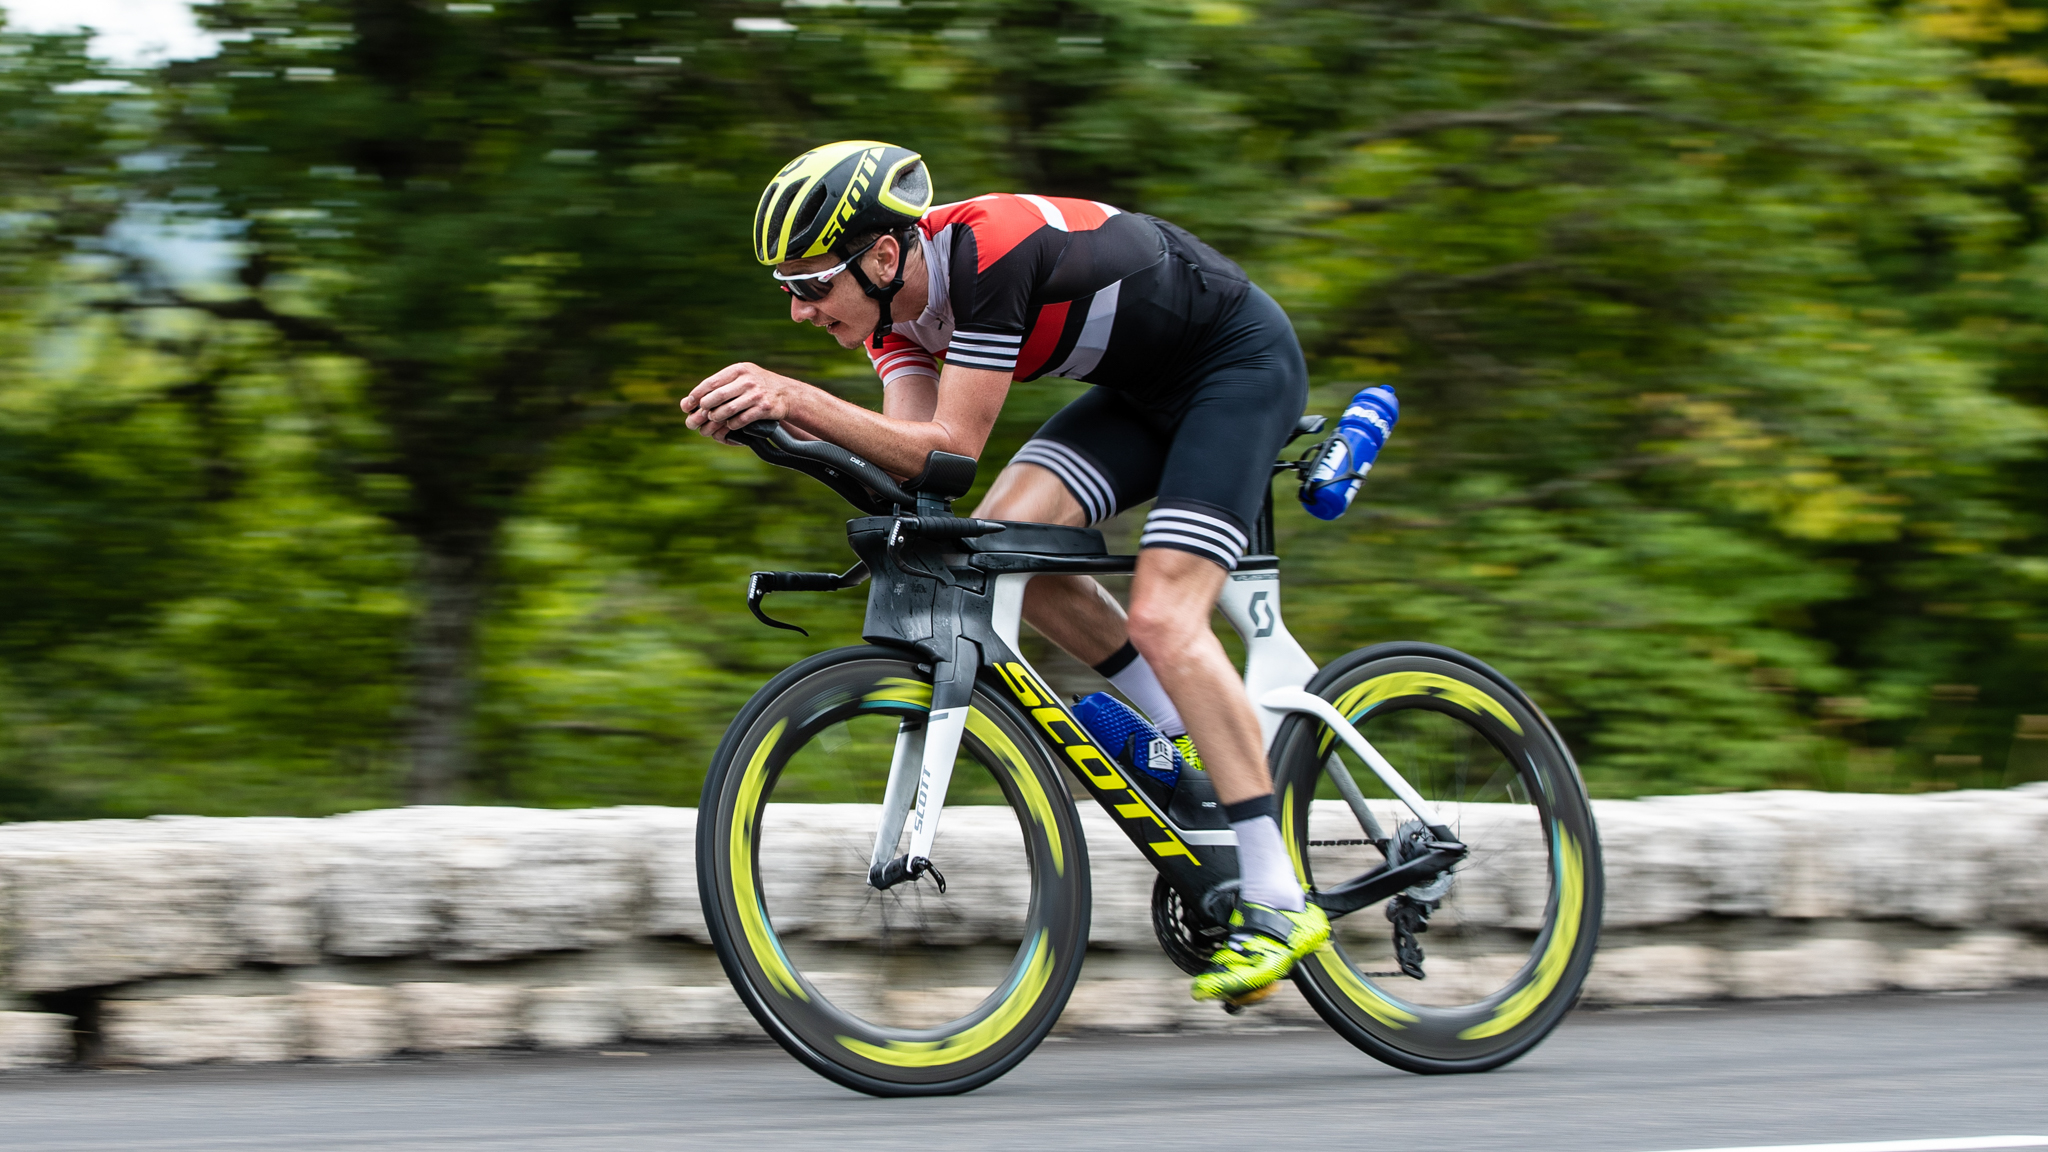 Unbreakable: Alistair Brownlee excited for 'massive deal' at Daytona